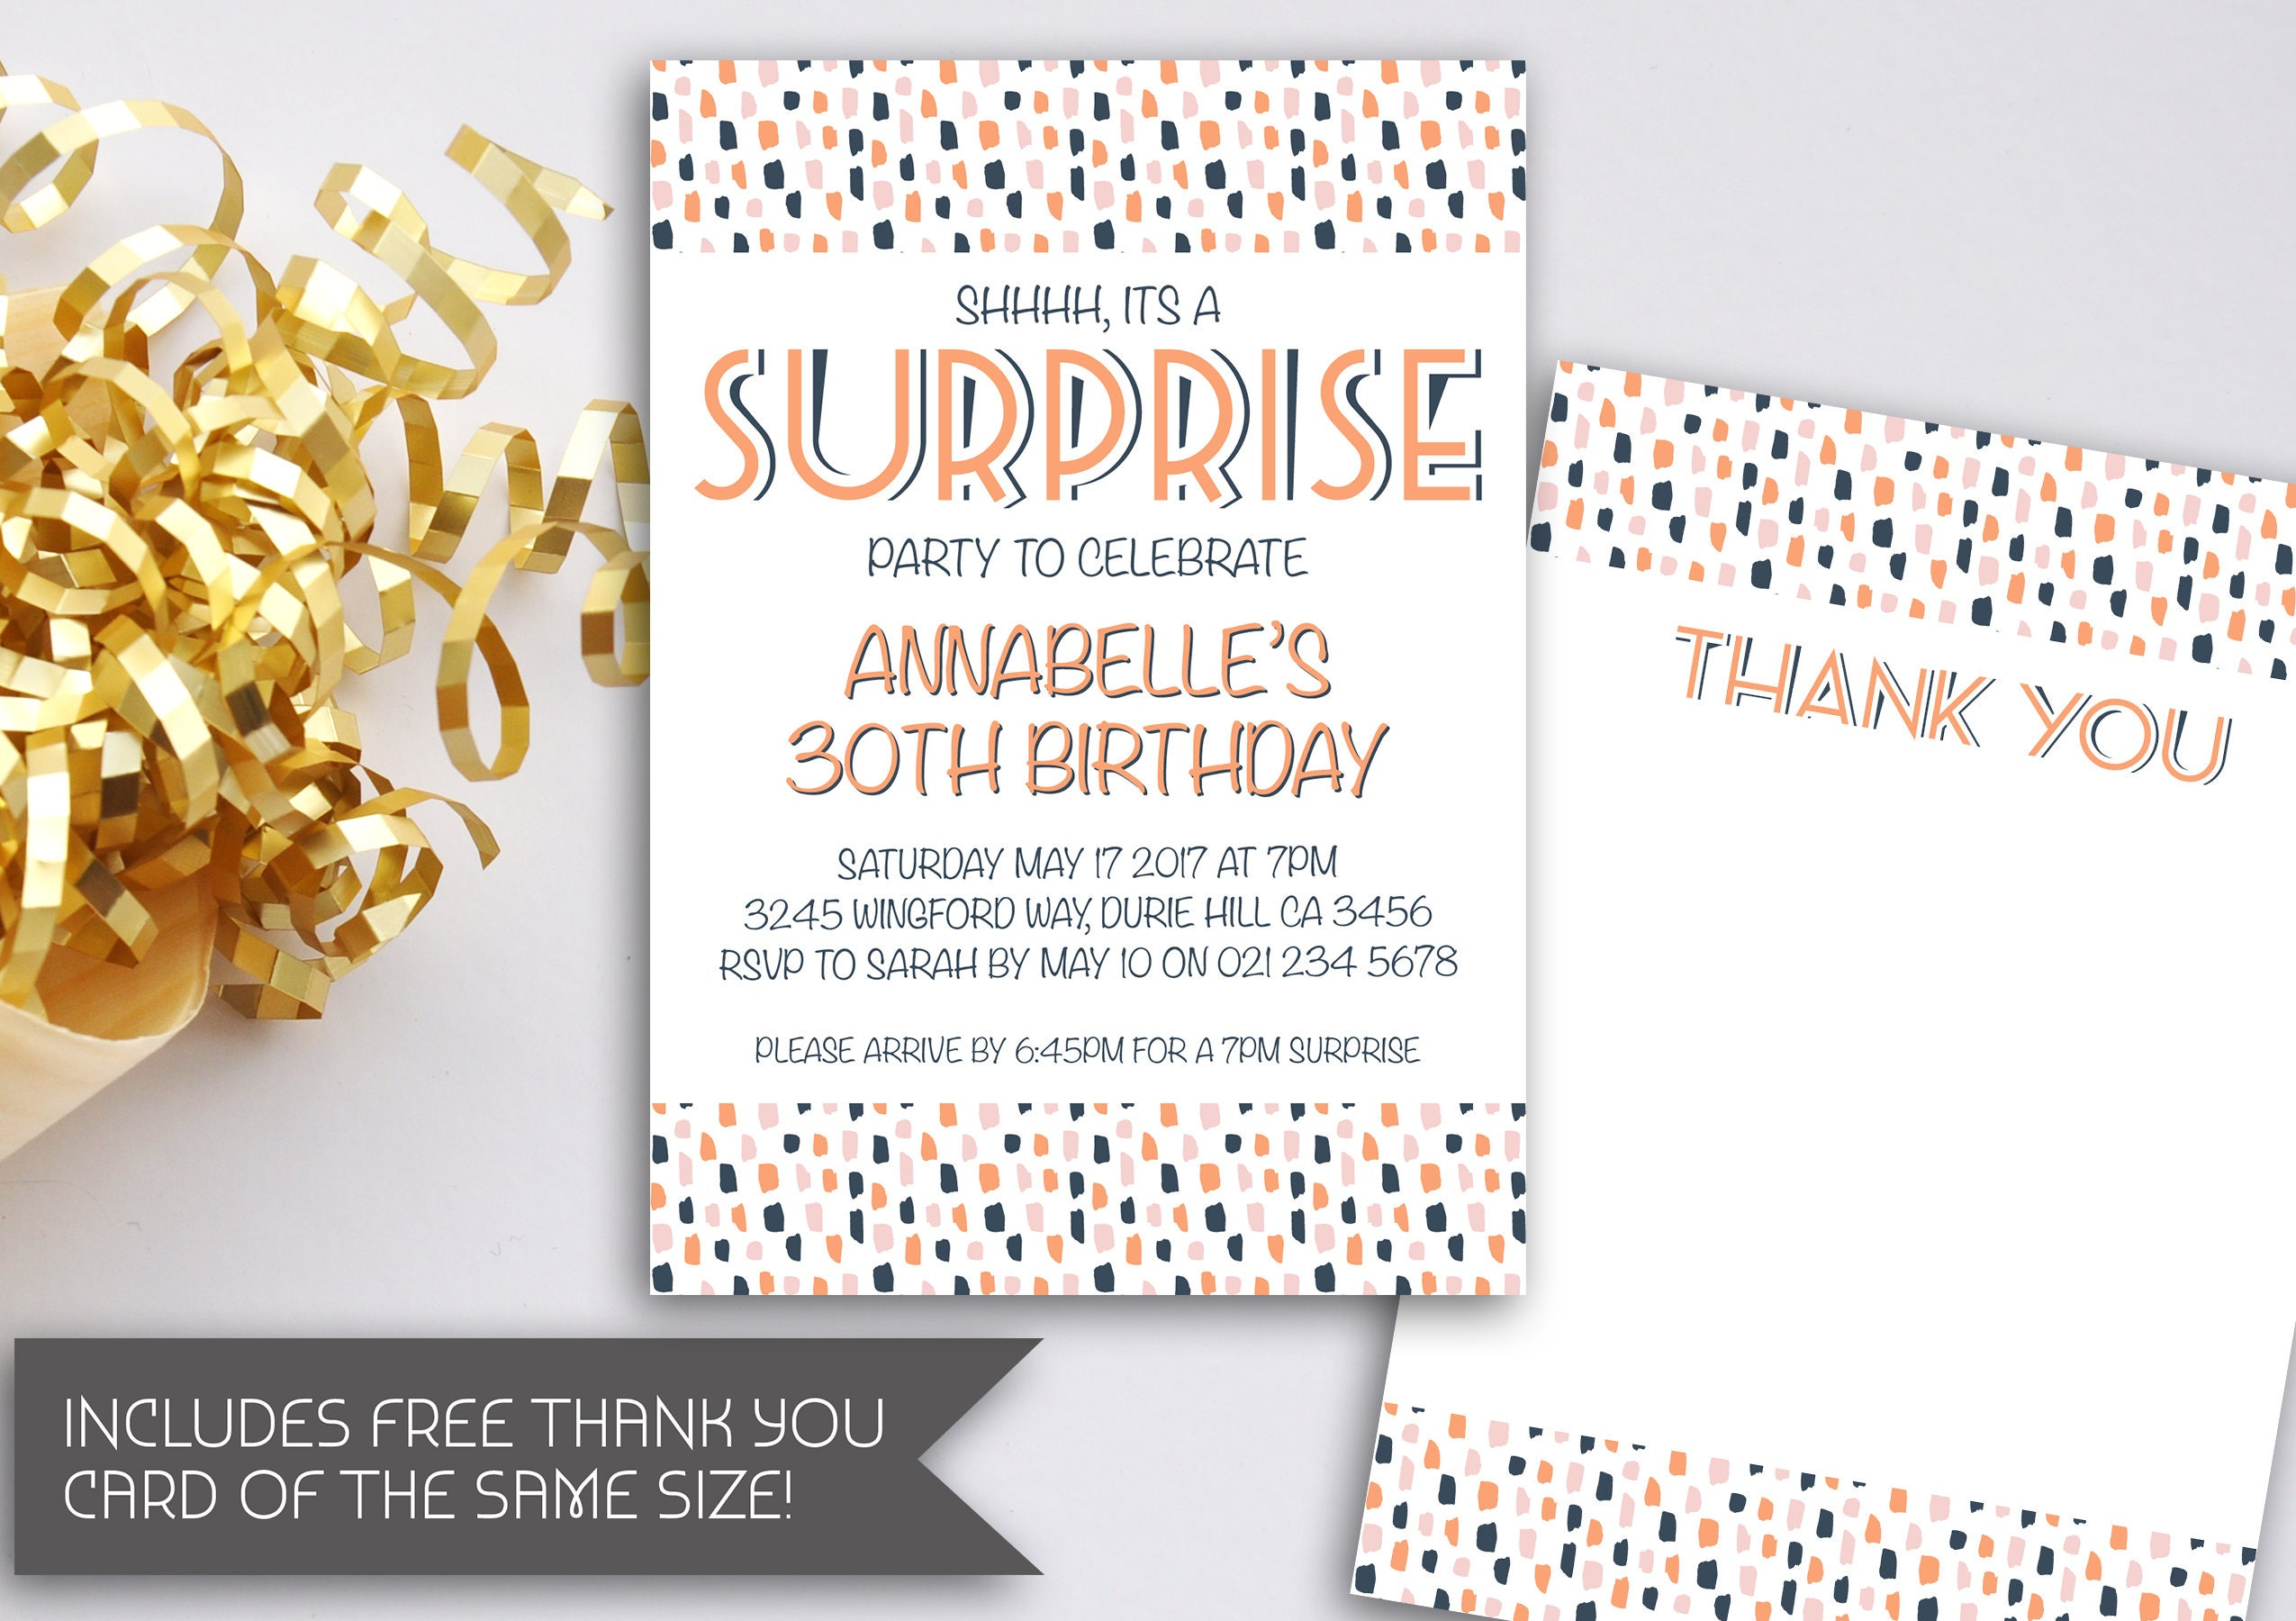 Surprise Birthday Invitation | Surprise Party Invitation | Art Deco ...